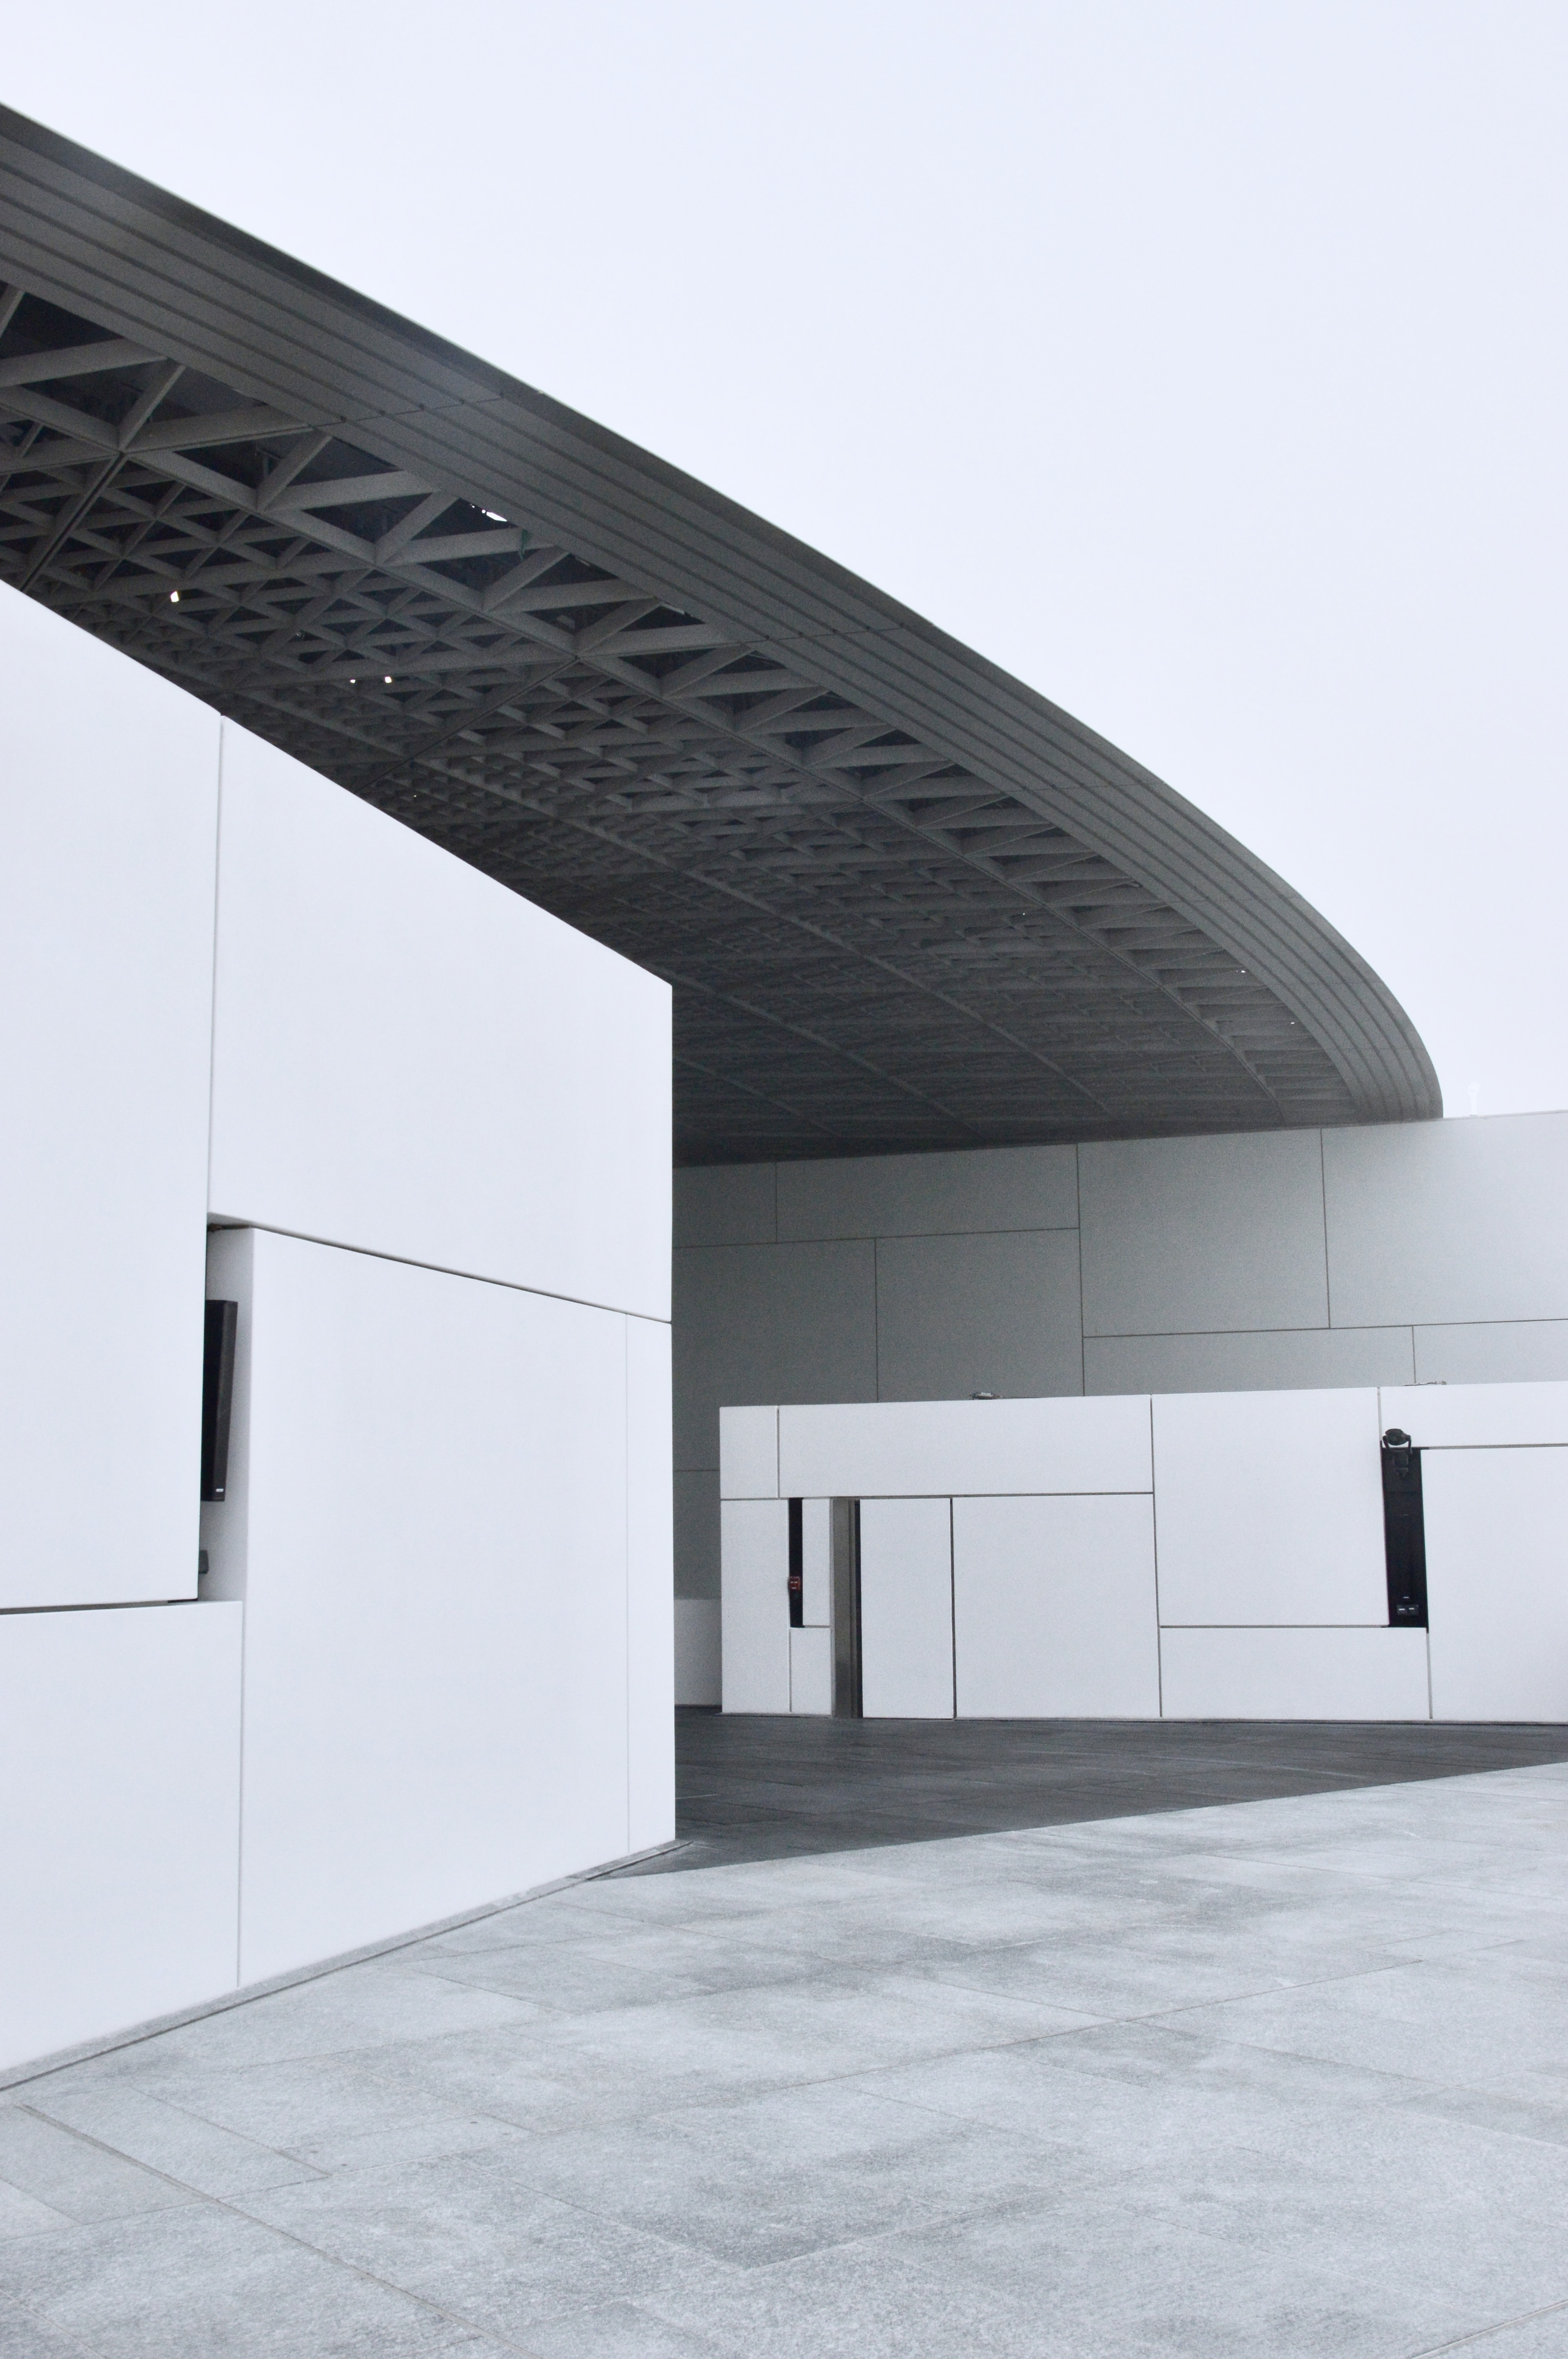 white and black architectural building